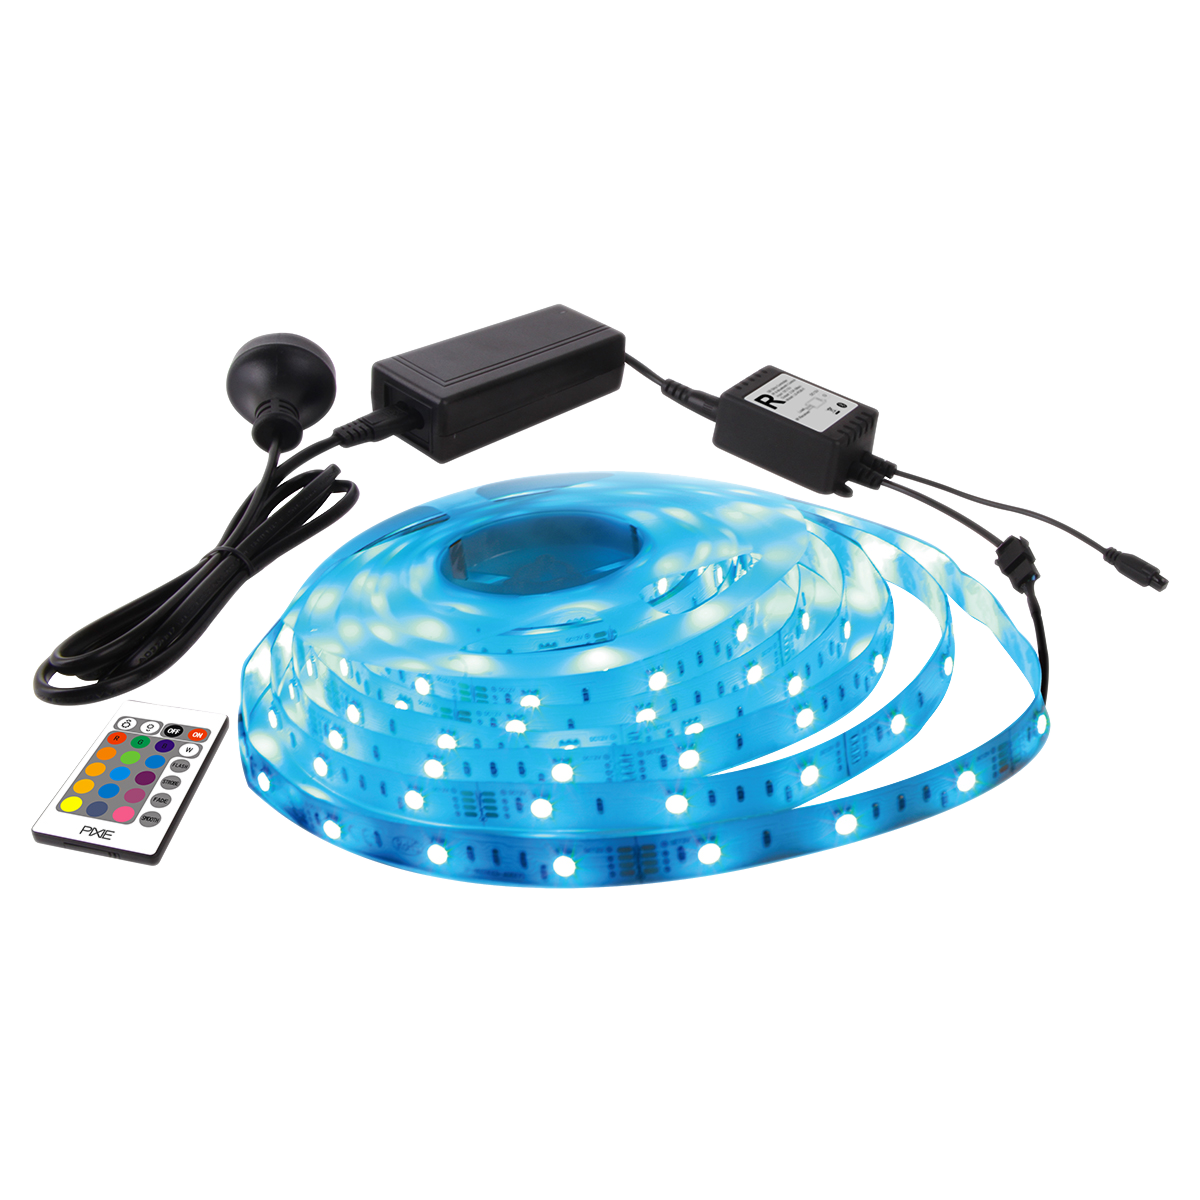 Flexi Smart LED Strip Kit RGB 2M - Sunny Aust. Lighting (SAL)